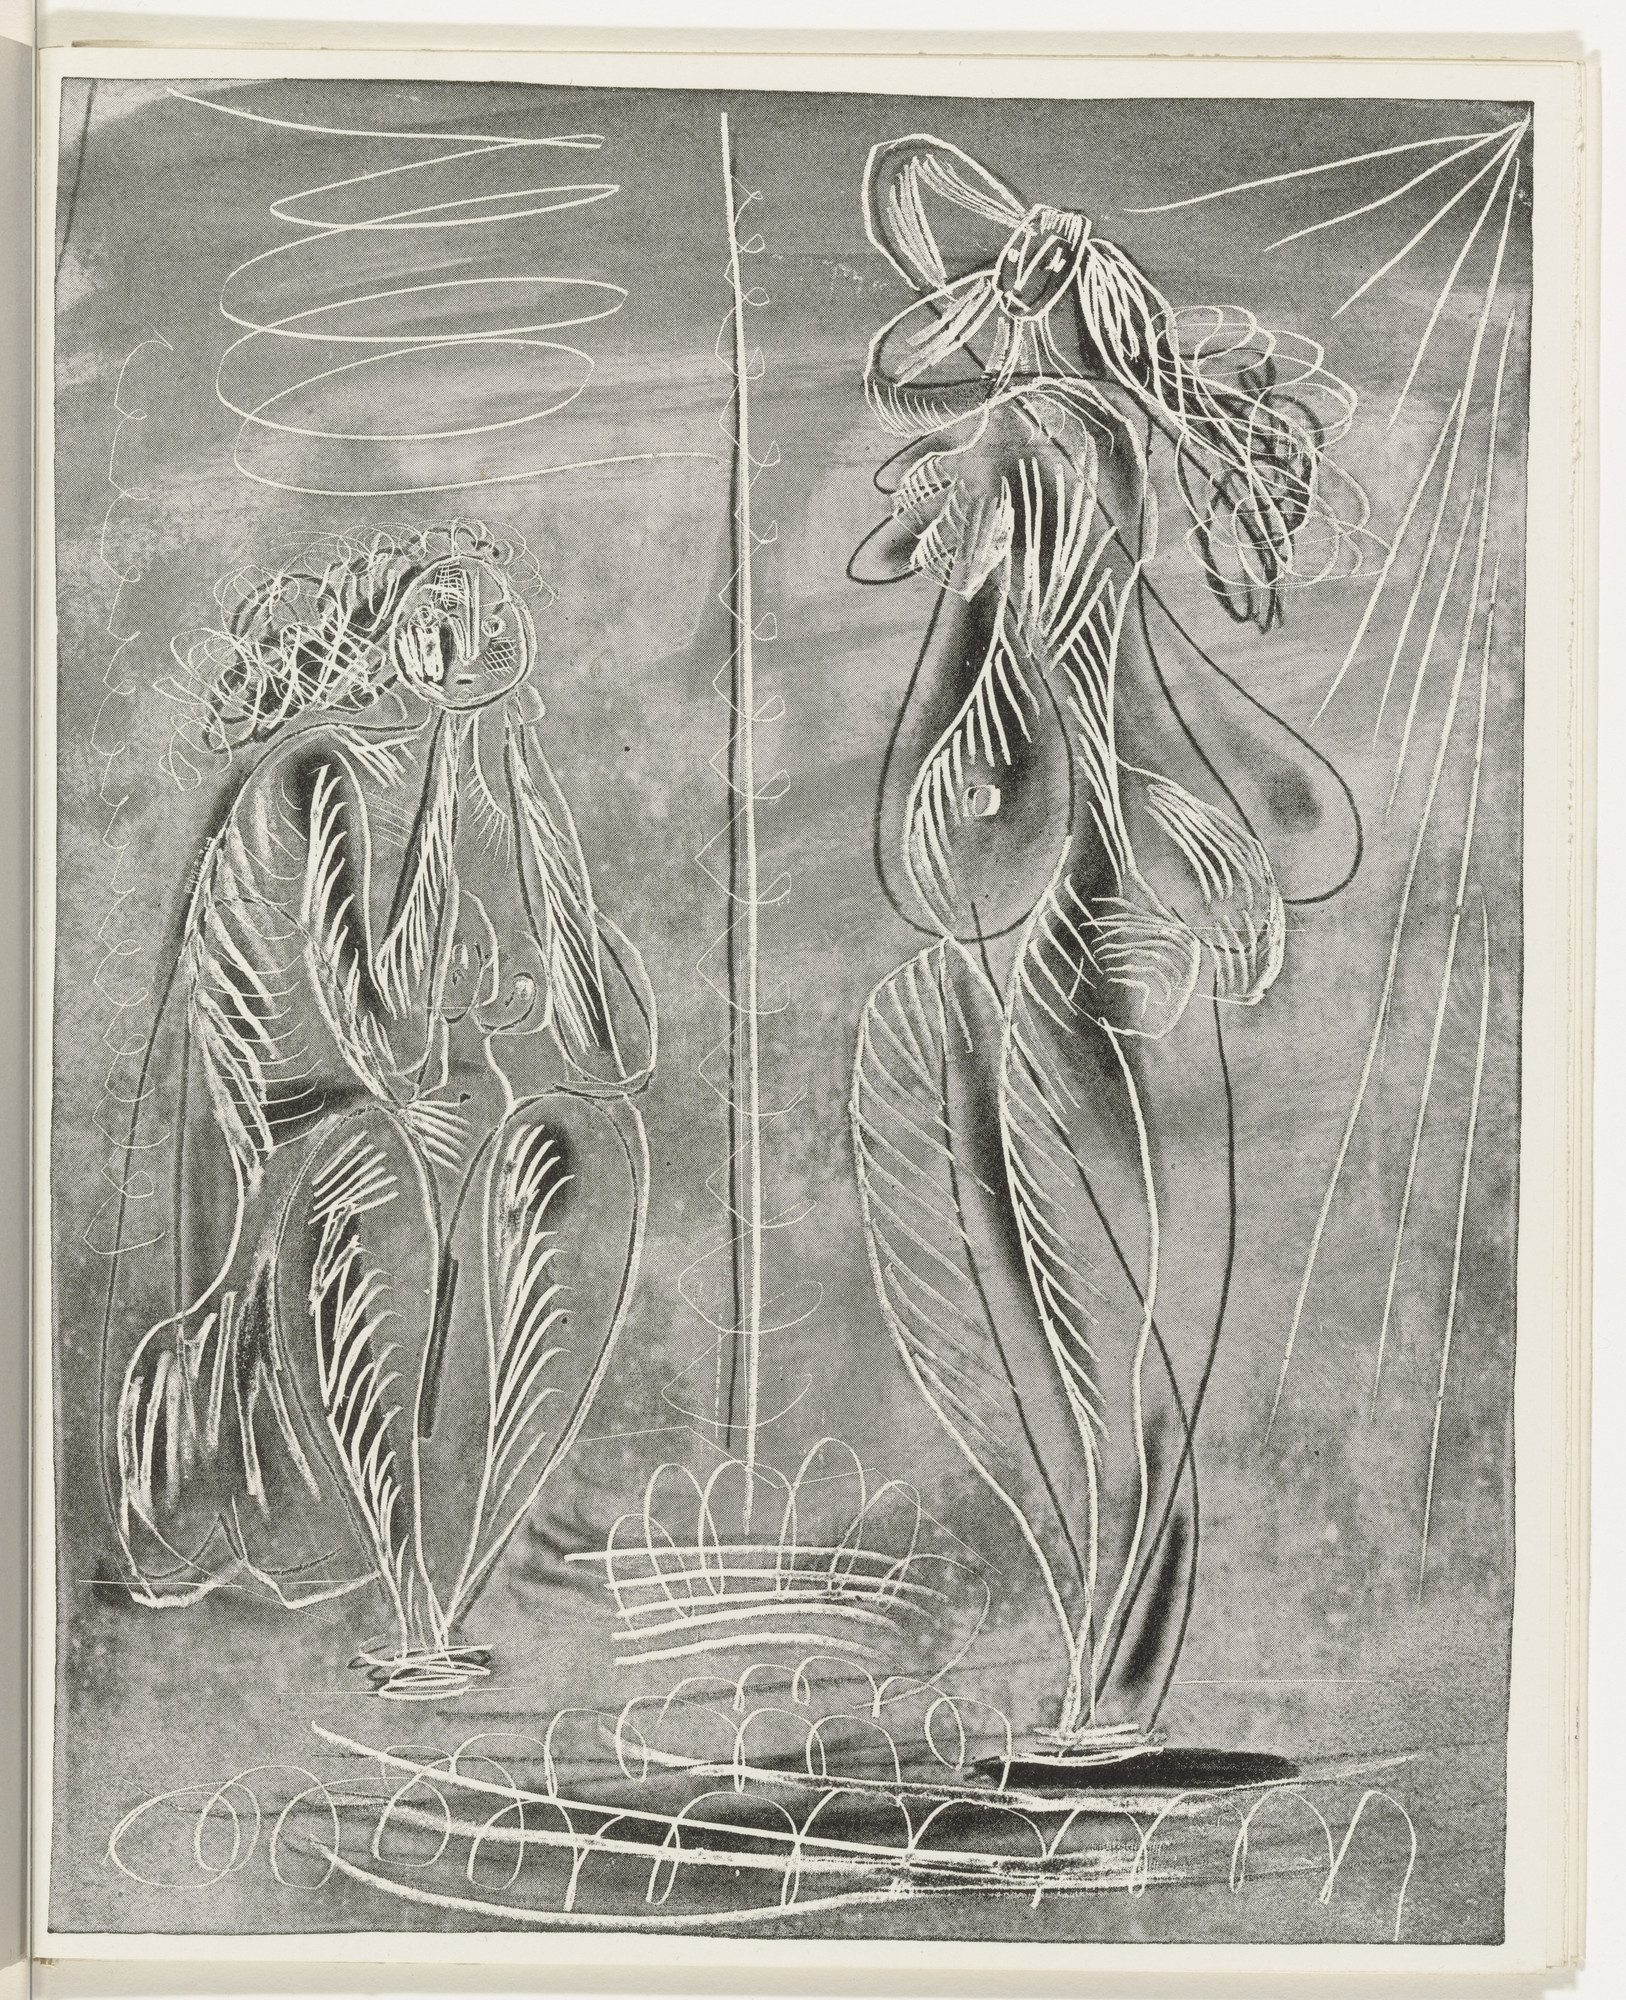 Pablo Picasso. Two Women (plate, folio 29) from the illustrated book La Chèvre-Feuille. 1943